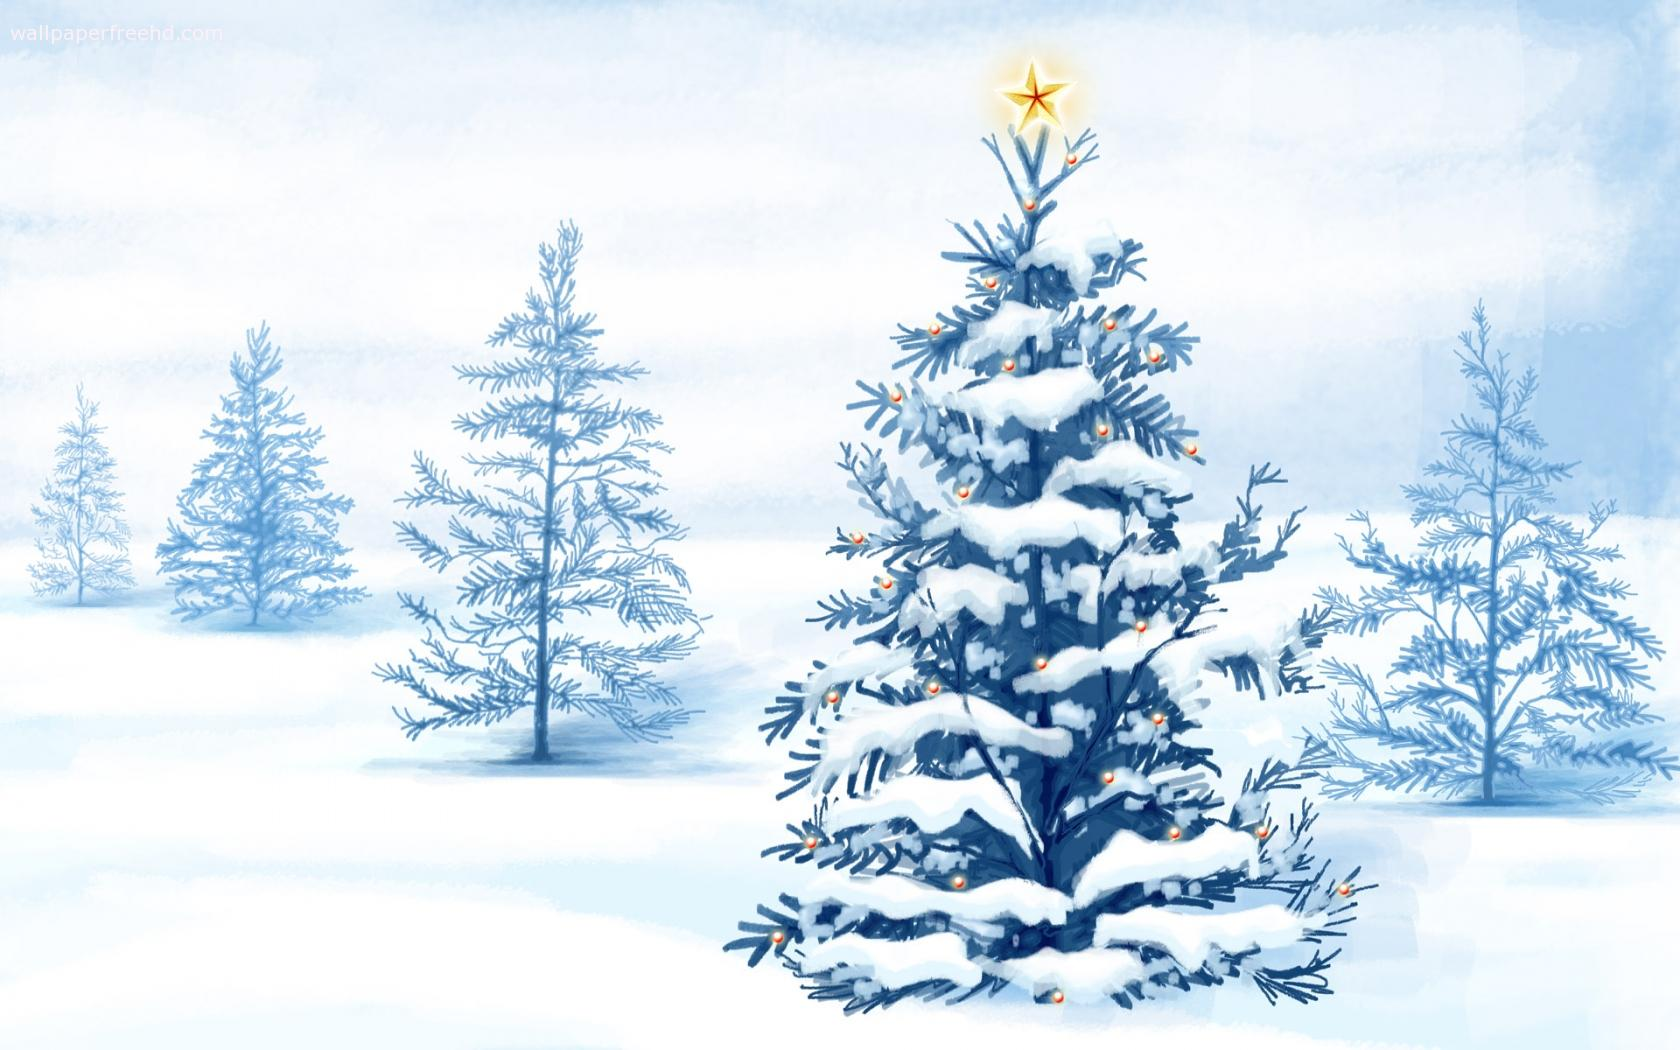 Free Christmas Desktop Wallpapers - Wallpaper Cave